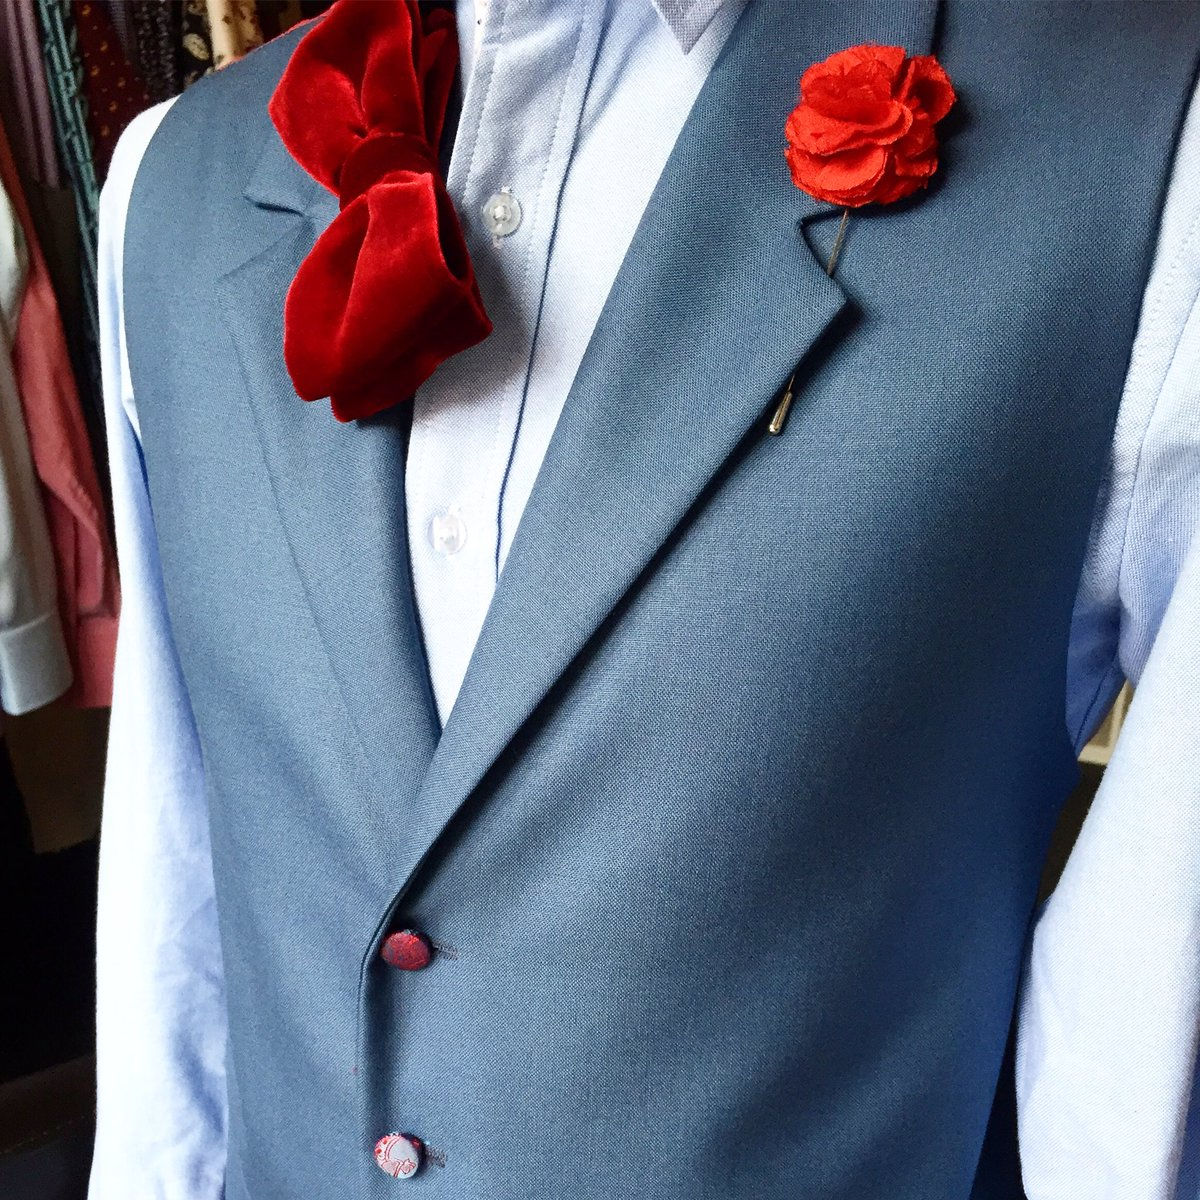 Dandylion style for the special occasion. #dapper #fashion #dandylionstyle #bespokewaistcoat #tailoring #sussextailors #funky #cool #dapperpic.twitter.com/utSd8SSoDA